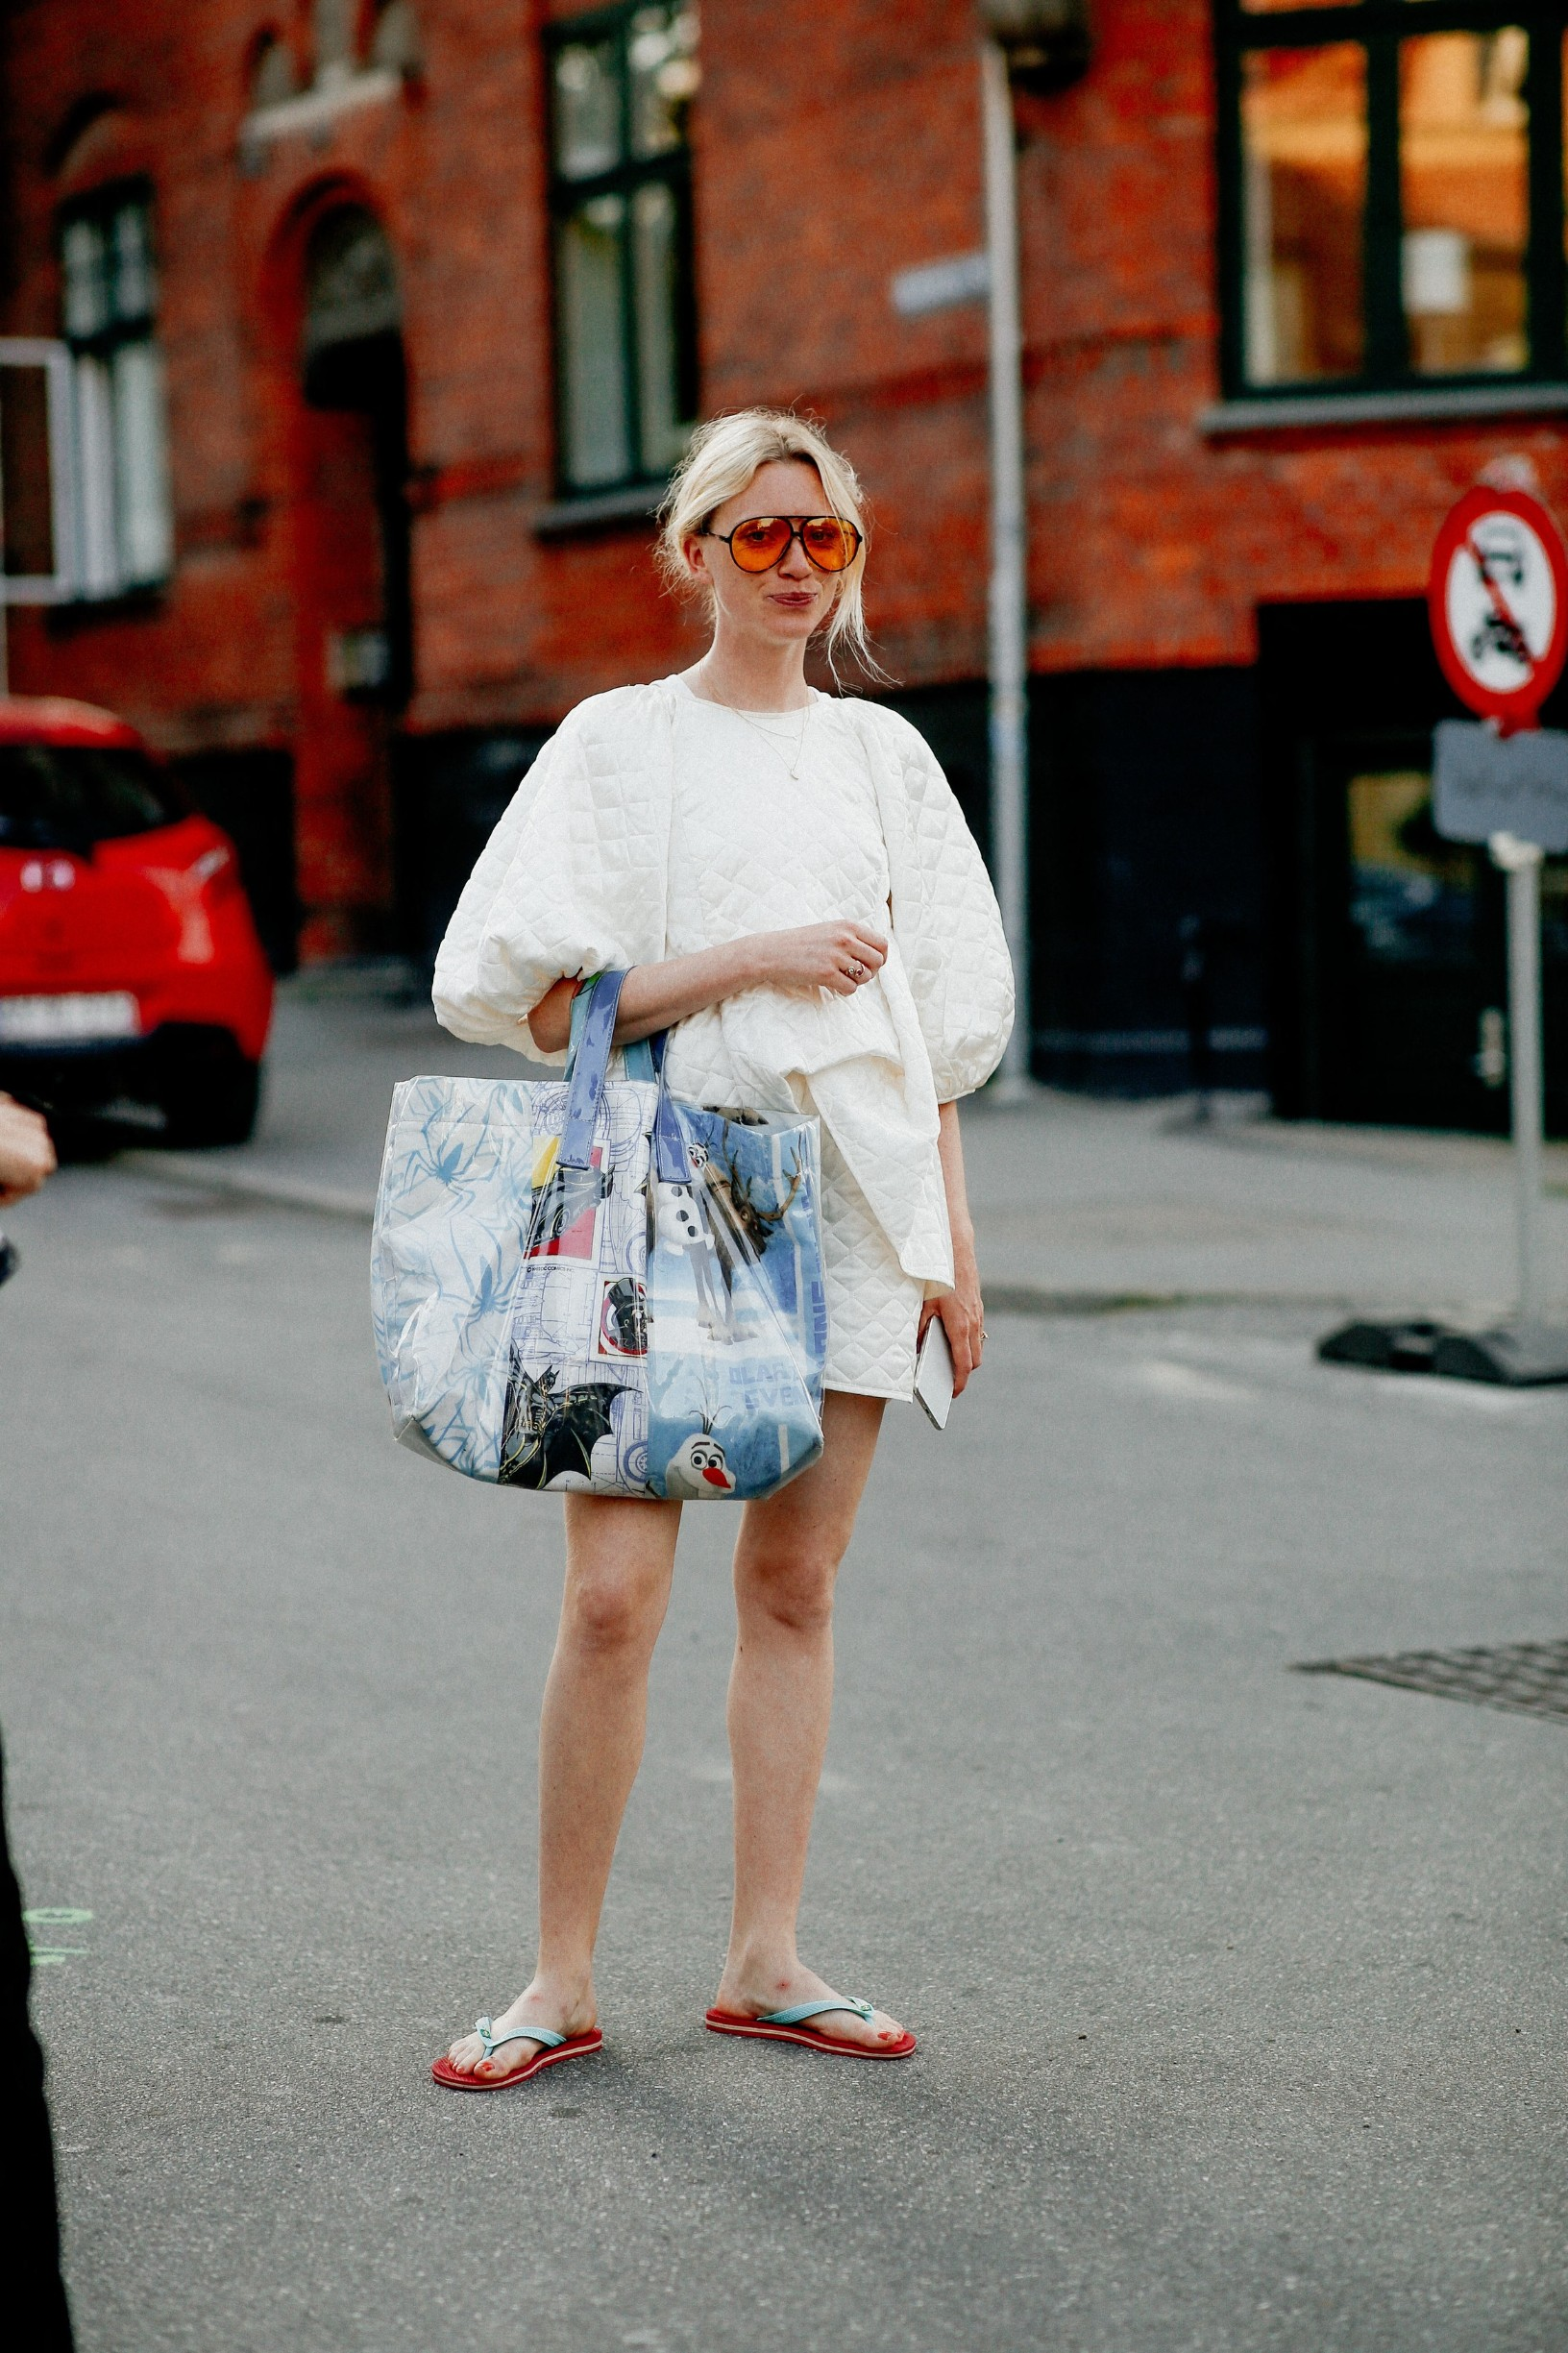 Street style, arriving at By Malene Birger Spring Summer 2021 show, held at Rahbeks Alle, Copenhagen, Denmark, on August 12, 2020.,Image: 554930228, License: Rights-managed, Restrictions: , Model Release: no, Credit line: Bertrand-Hillion Marie-Paola/ABACA / Abaca Press / Profimedia